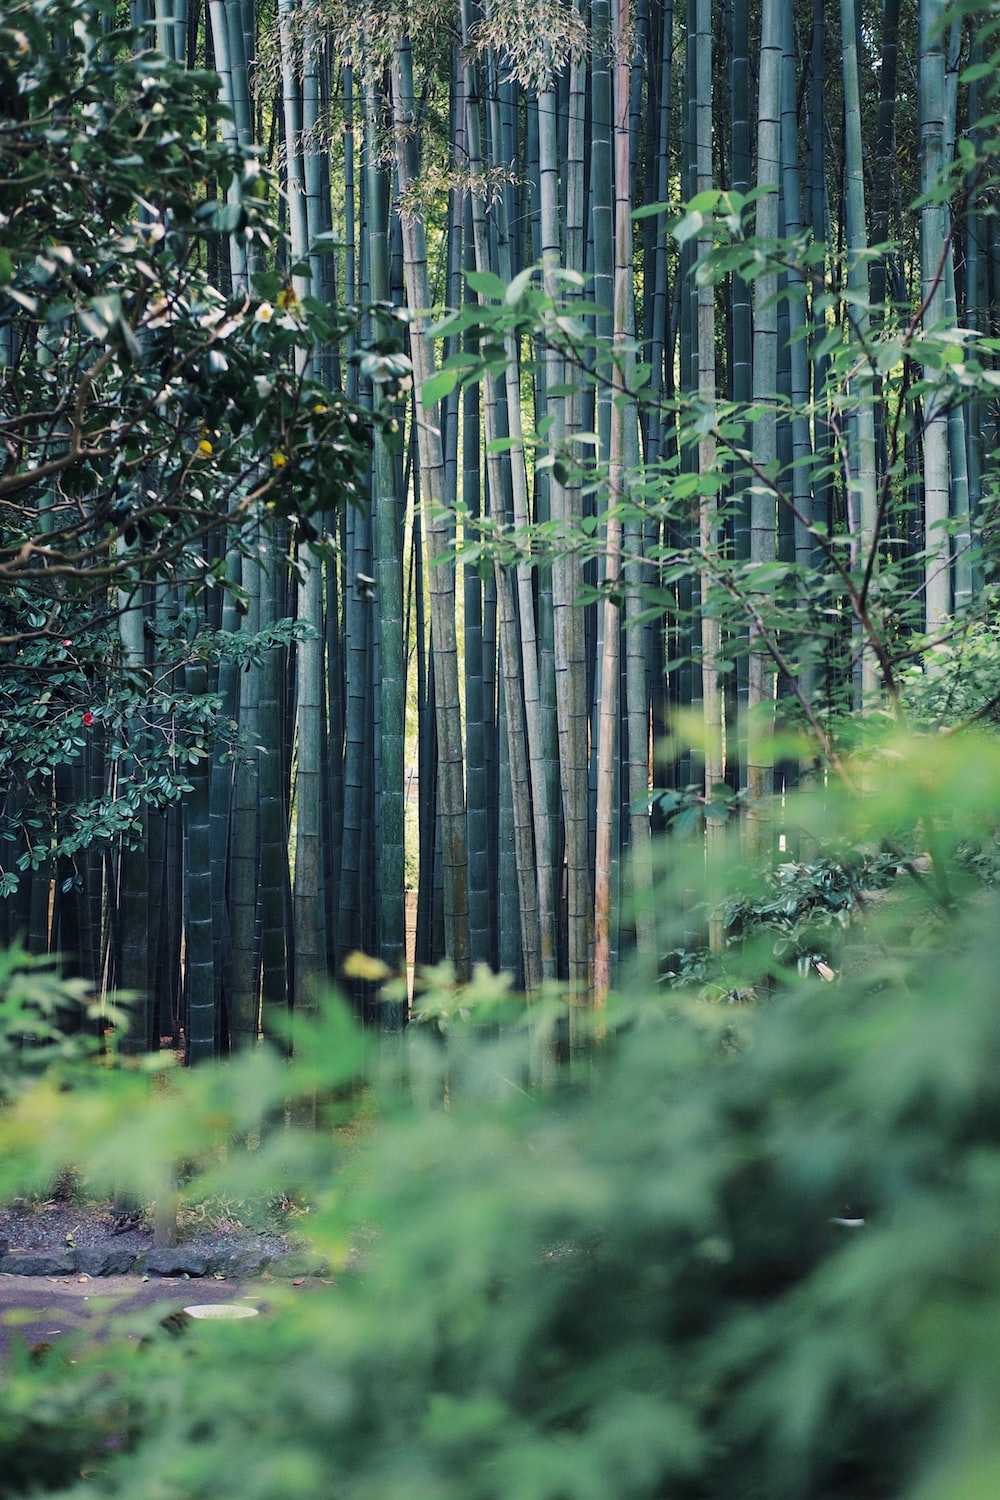 selective focus photo of green bamboo trees